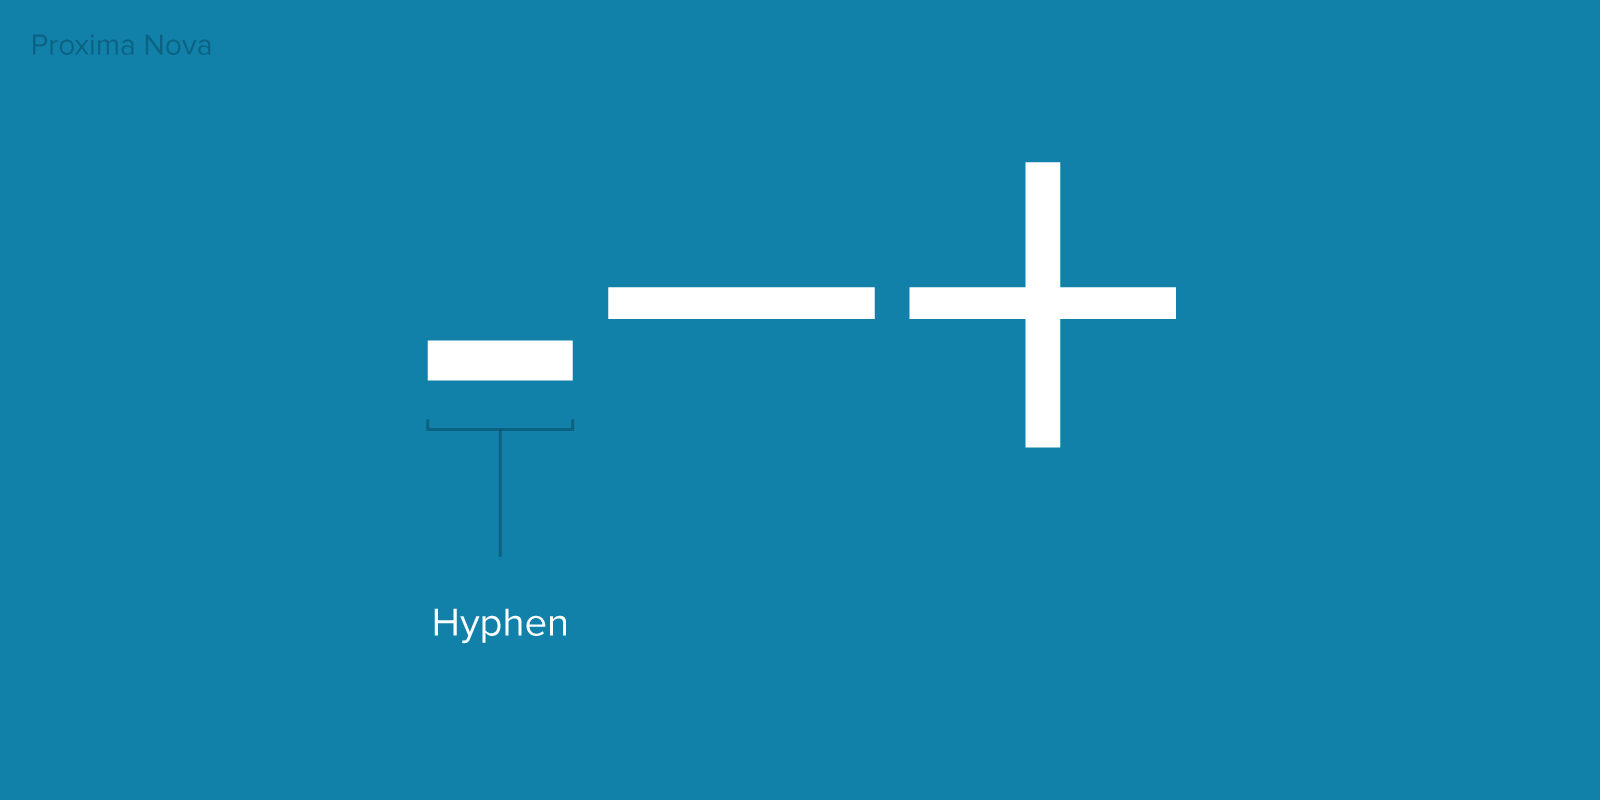 A true minus sign is placed higher, longer, and thinner than a hyphen. Same as the thickness and length of a plus sign.